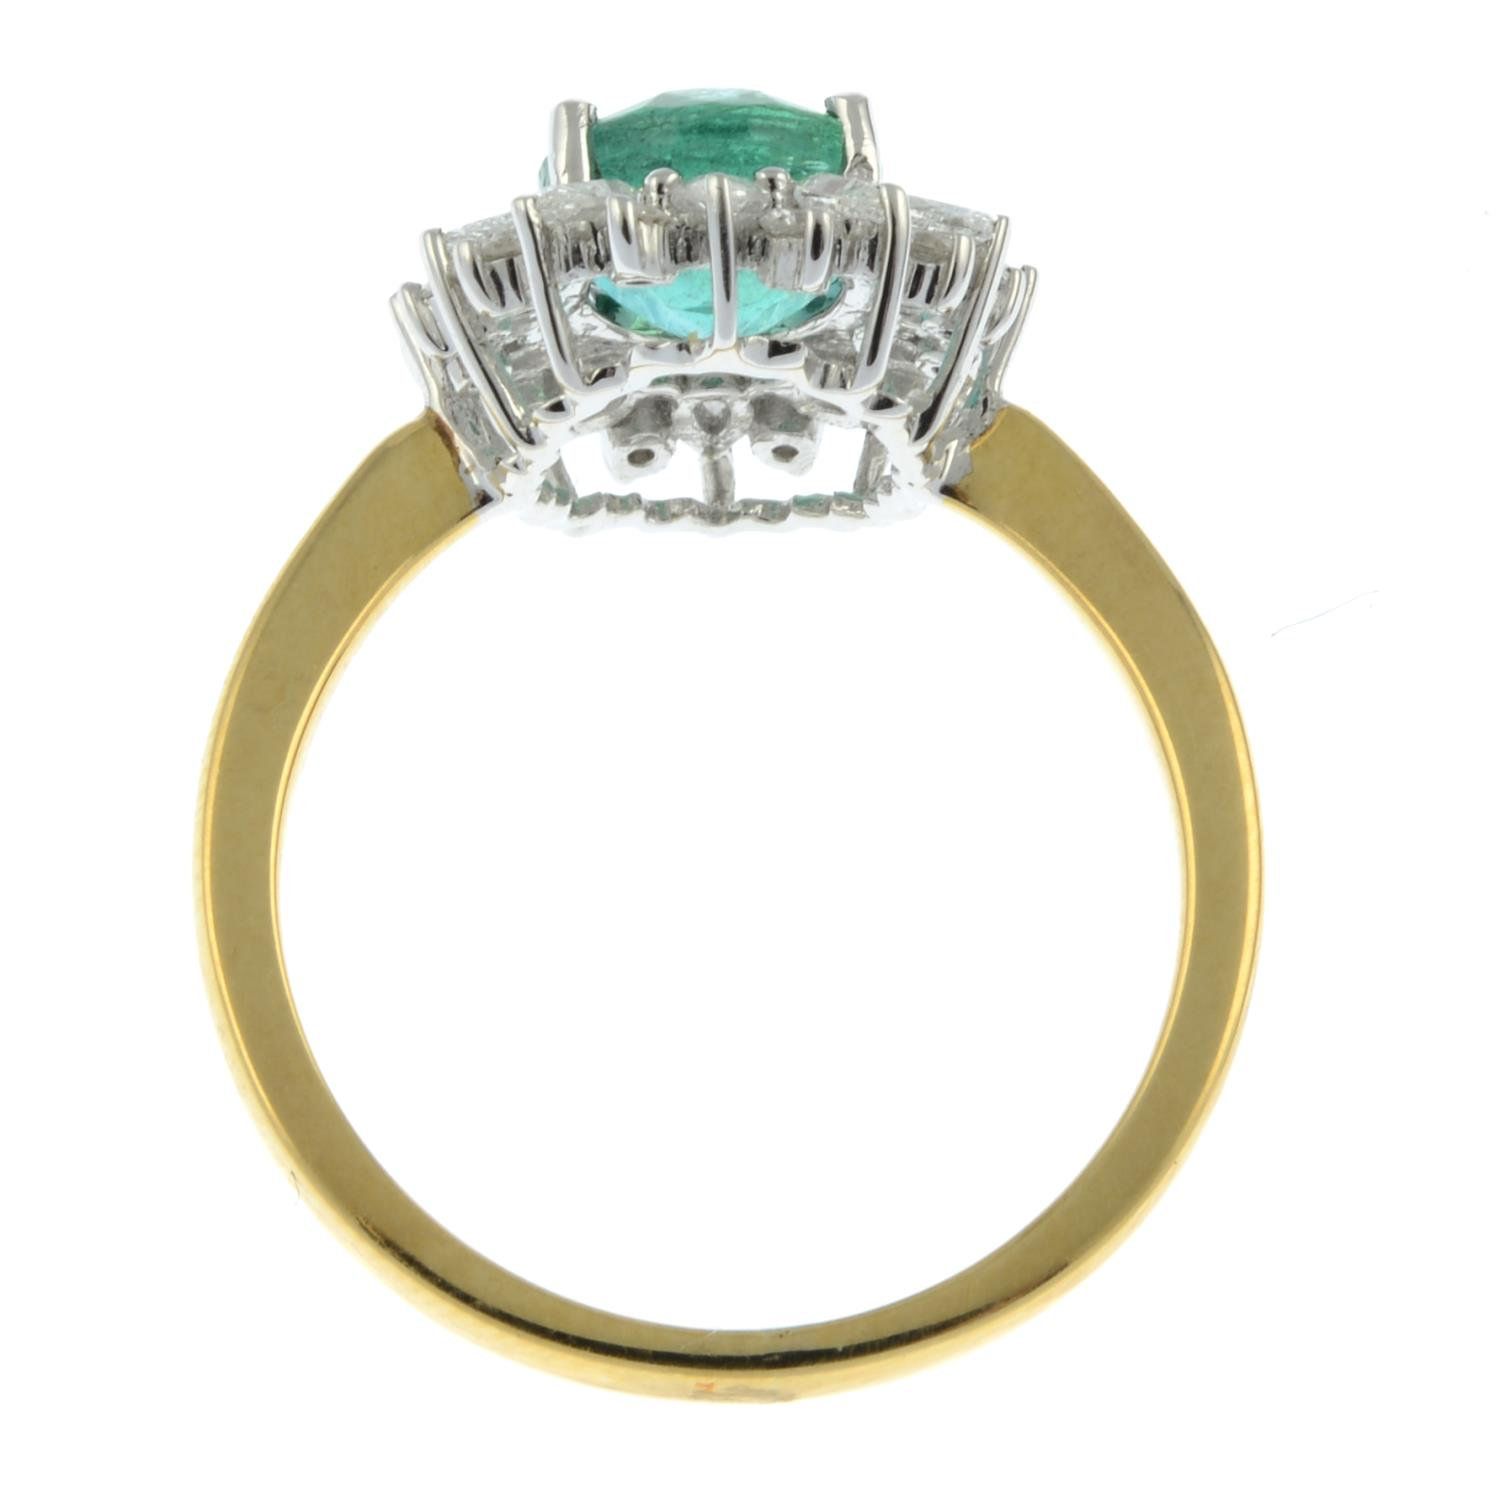 An 18ct gold emerald ring, - Image 6 of 6